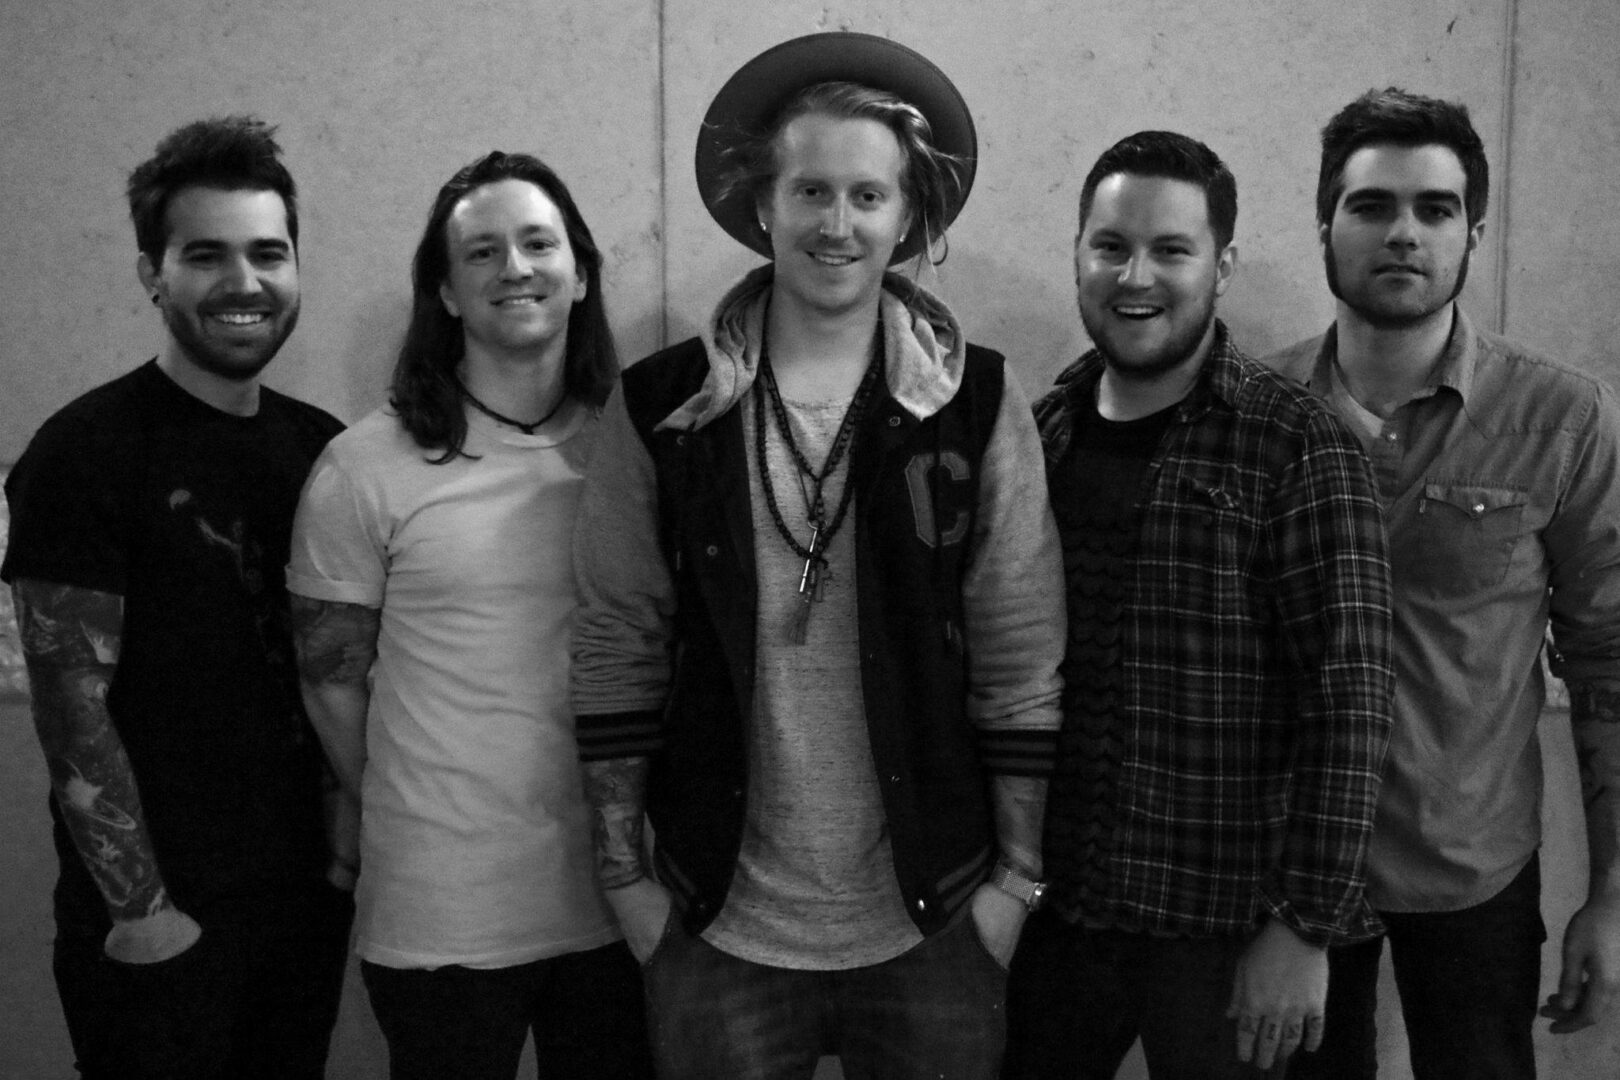 Get Excited For Vans Warped Tour 2016 With We The Kings